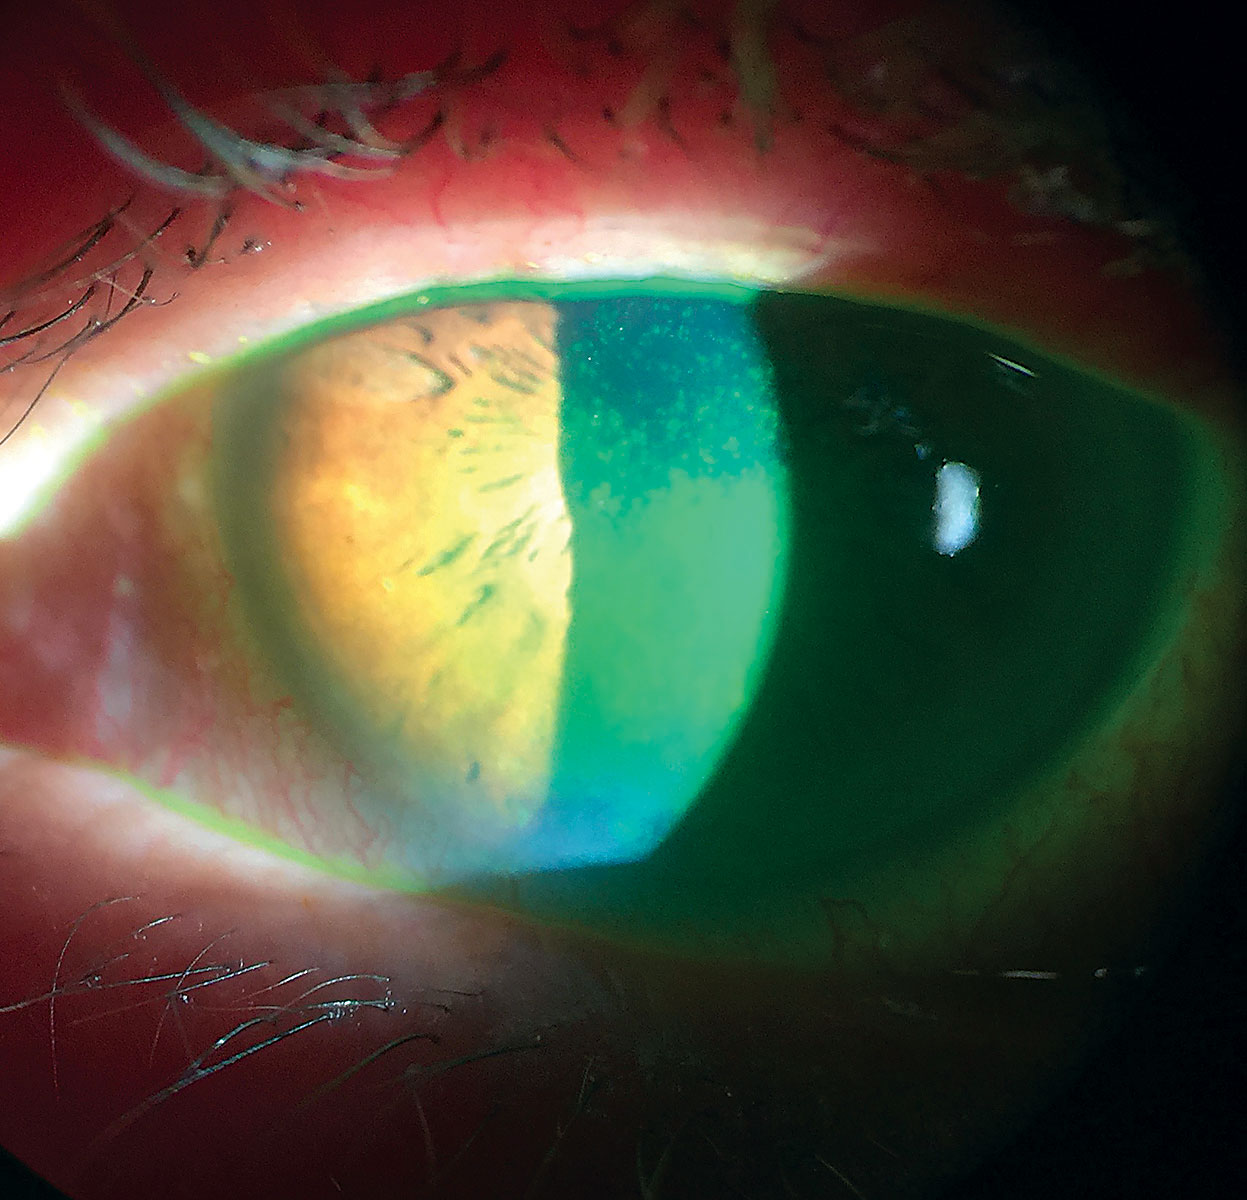 A cytokine coating for soft lenses could provide sustained dry eye treatment.